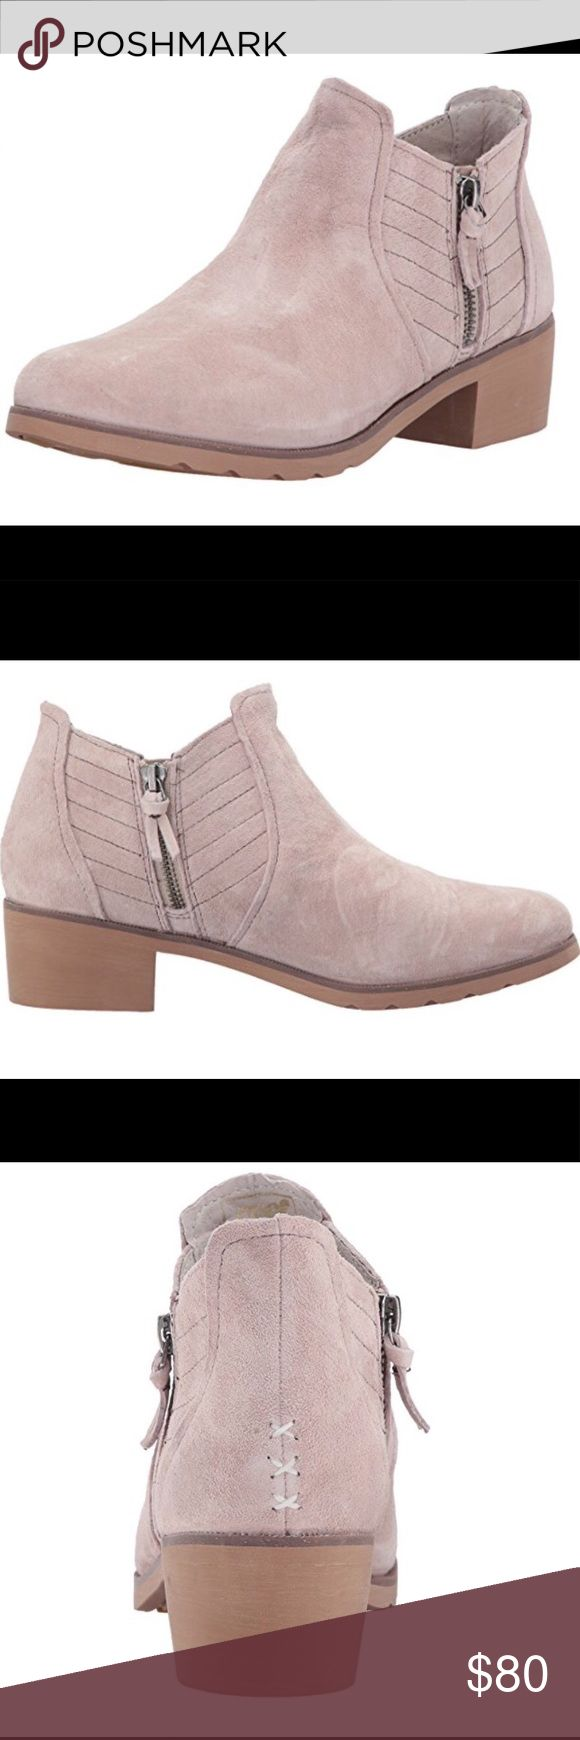 Brand New Reef ankle boots Suede. Silver Grey color  Imported Rubber sole Water resistant wolverine suede upper Super soft microfiber liner with pig suede tongue and heel lining Cork sockliner for premium detail and odor management Swellular traction outsole for superior traction in wet and dry conditions Chelsea boot styling with side zippers for easy on and off Reef Shoes Ankle Boots & Booties